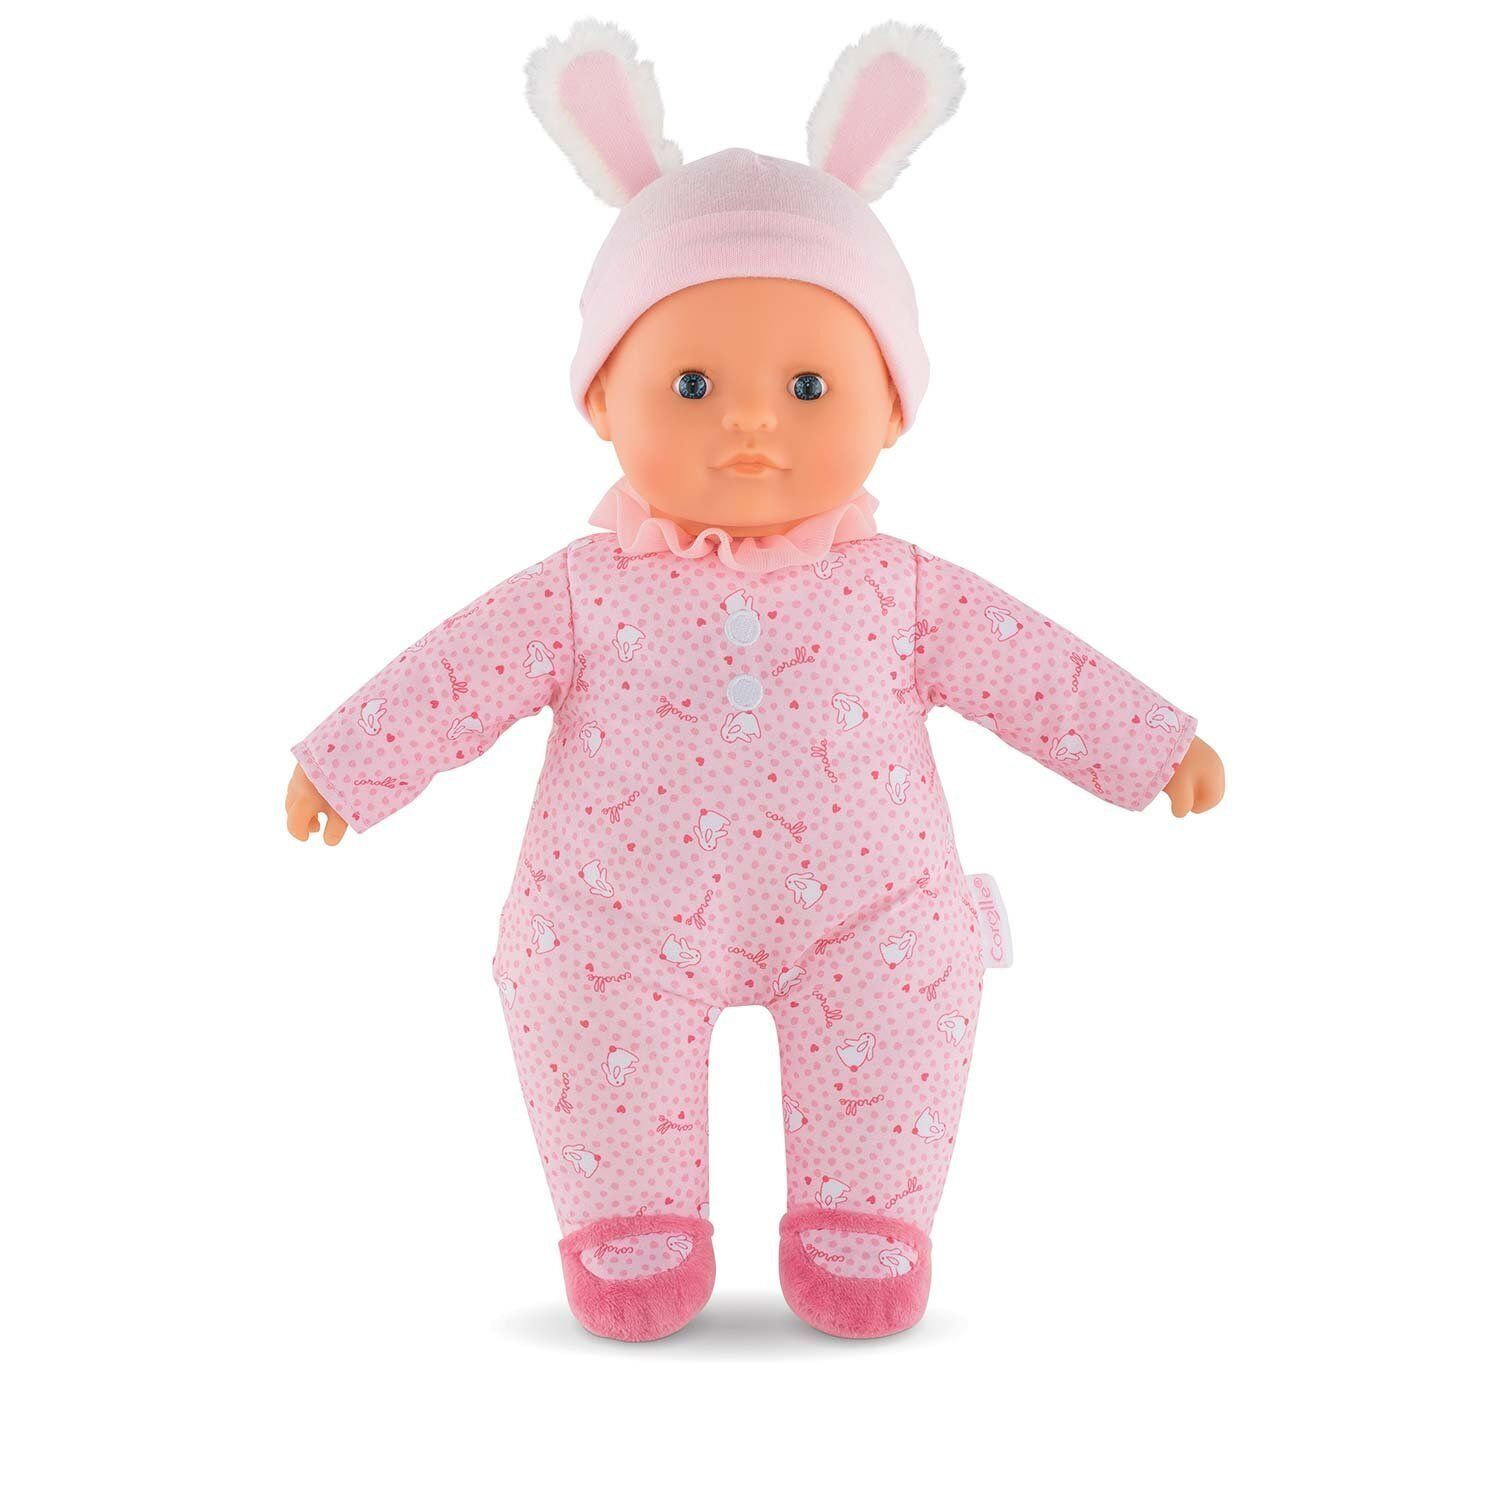 Corolle Mon Premier Poupon Sweet Heart Toy Baby Doll, Pink